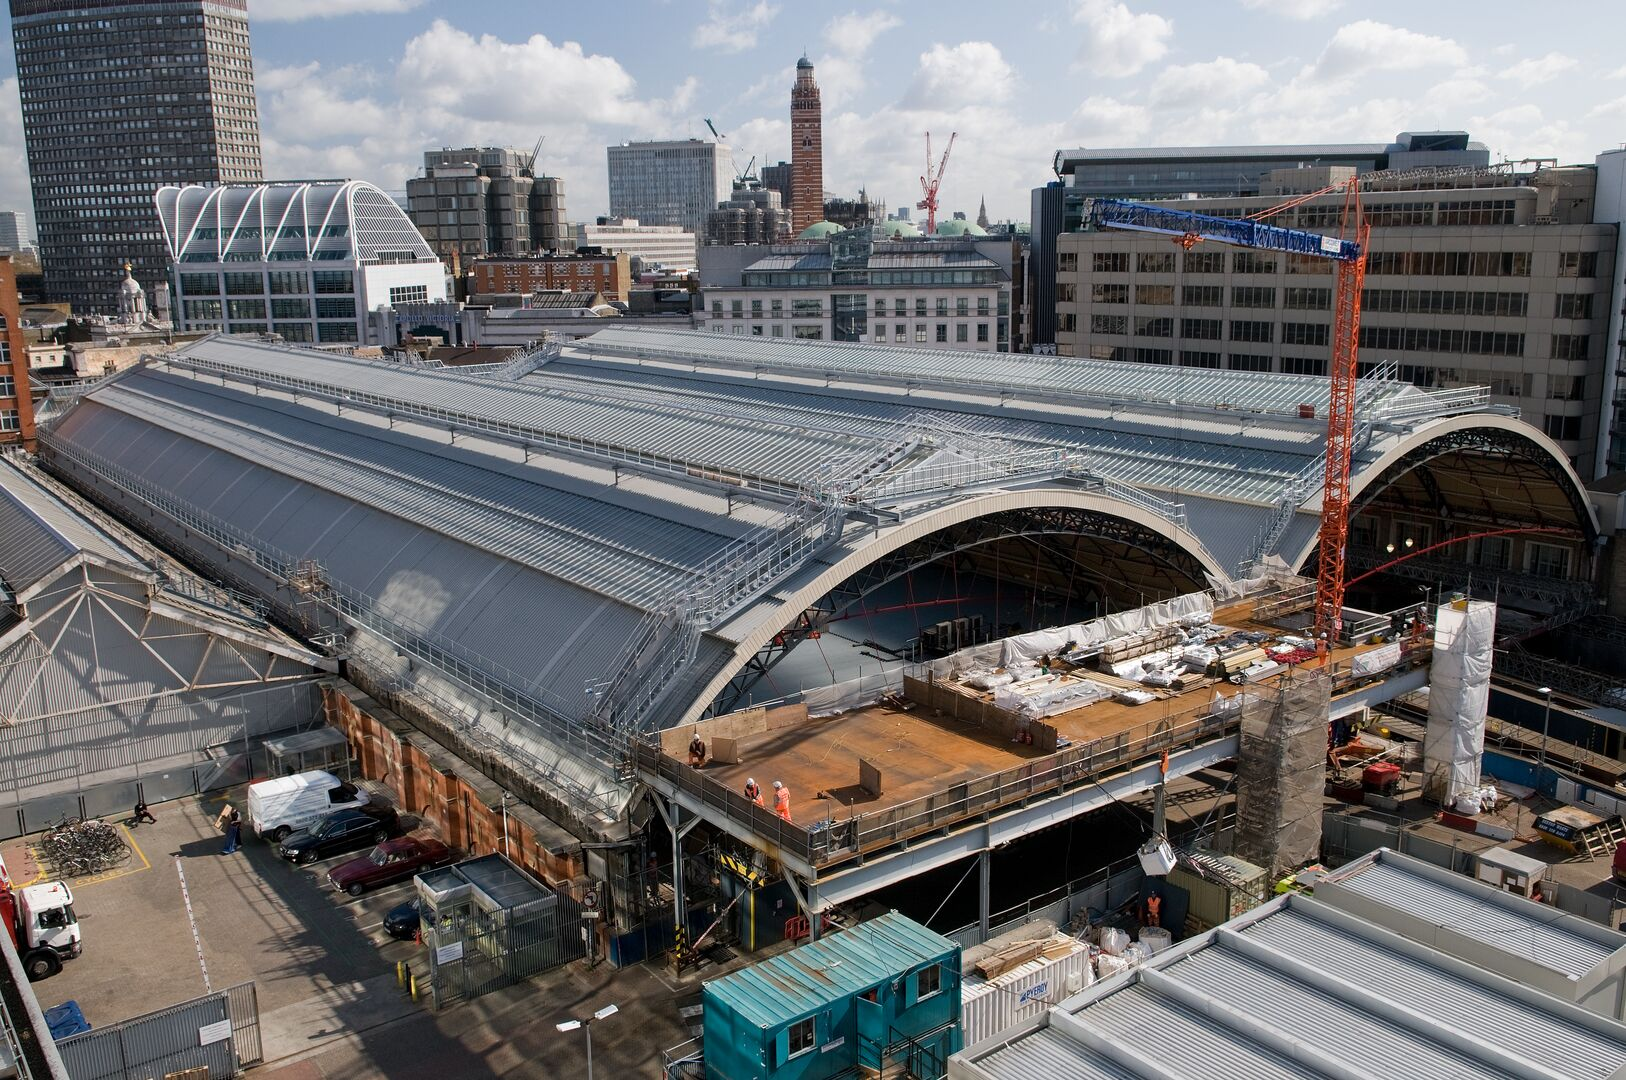 Trisobuild built up system curved roof for London Victoria Station